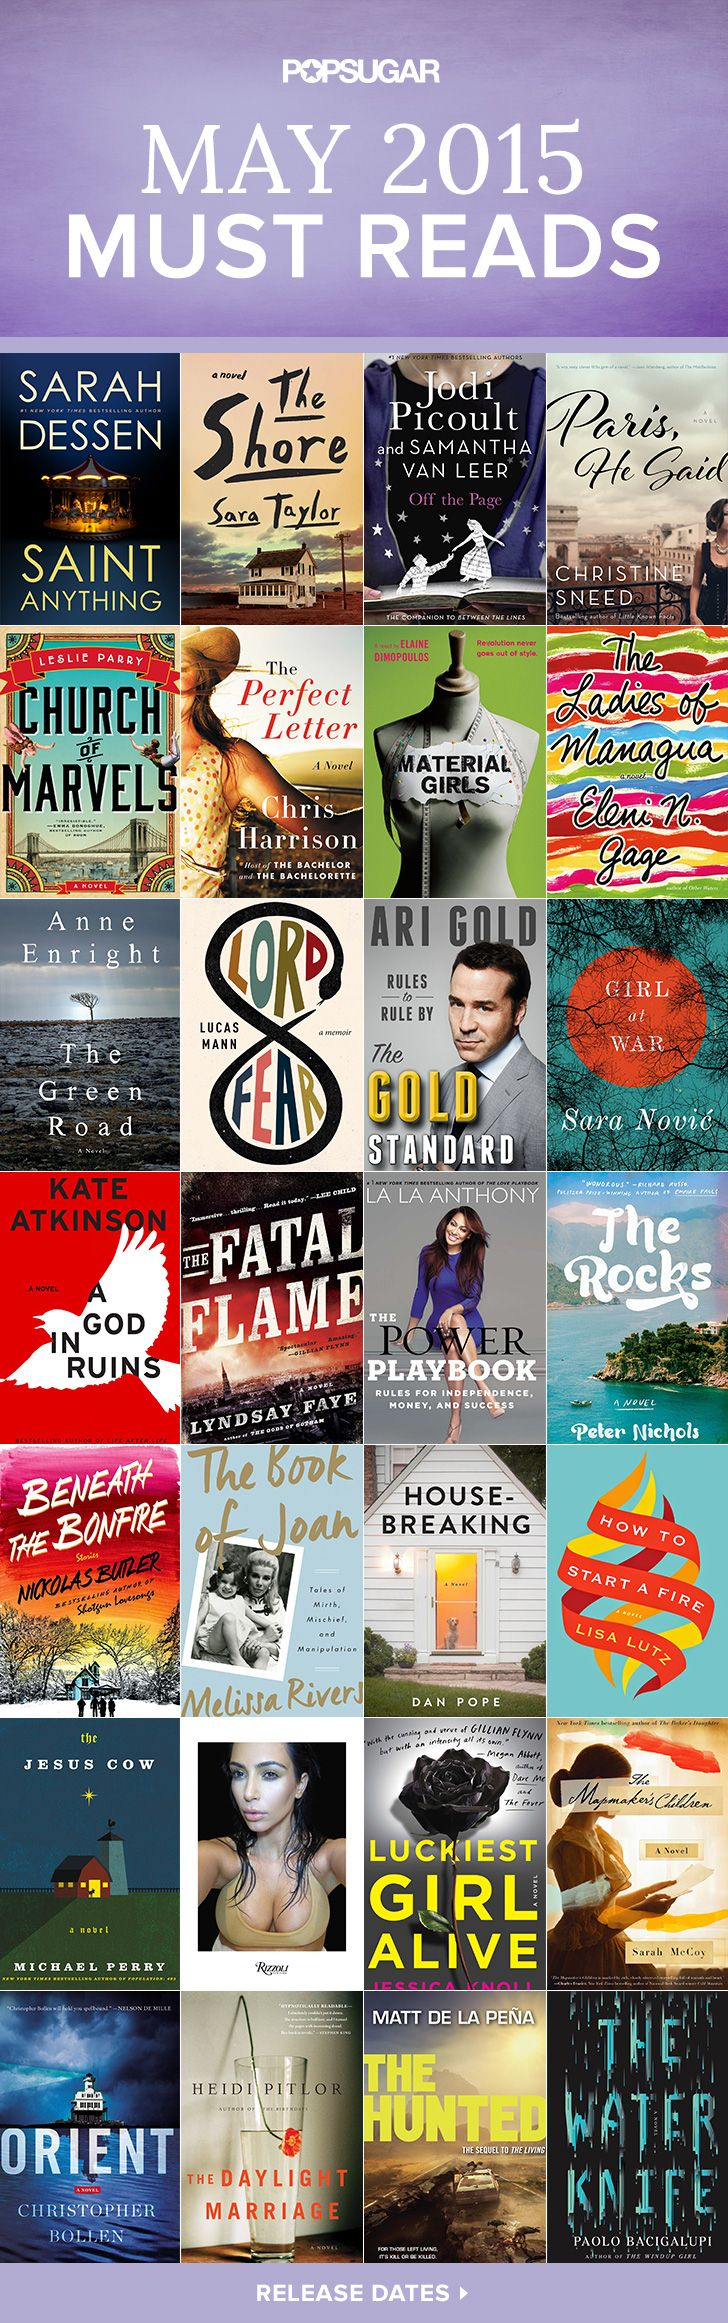 Need a new book for your reading list? Check out some of the best books coming out in May, including must-read novels and celebrity memoirs!